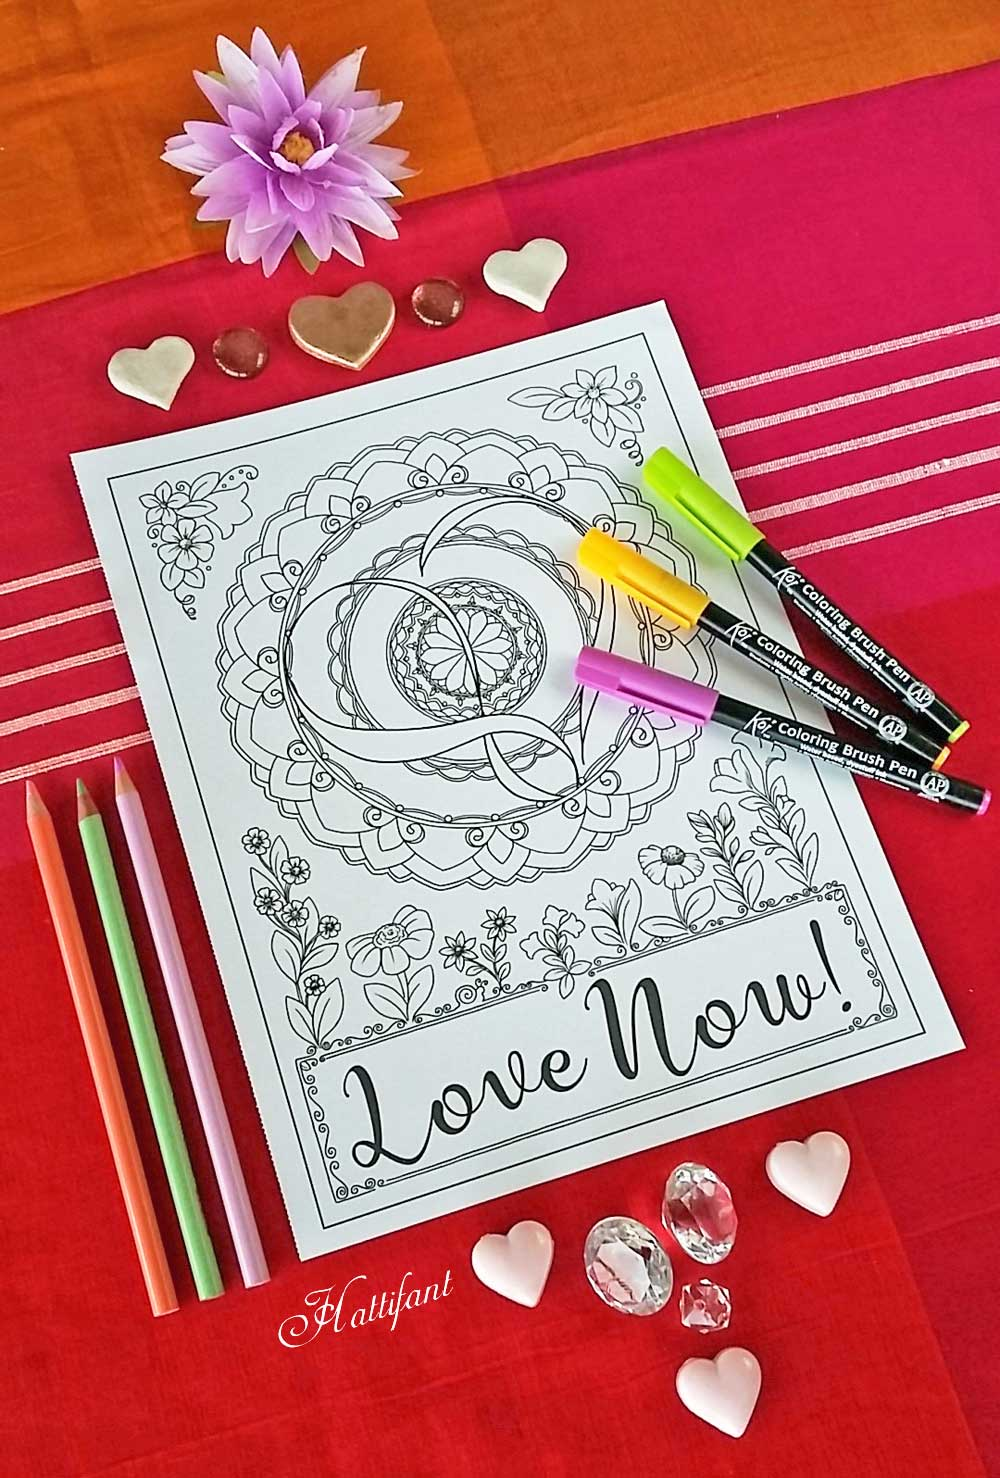 Hattifant's newest Coloring Book Inkpsiraitons Love by Design illustrated by Manja Burton Free Coloring Page with Red Ted Art